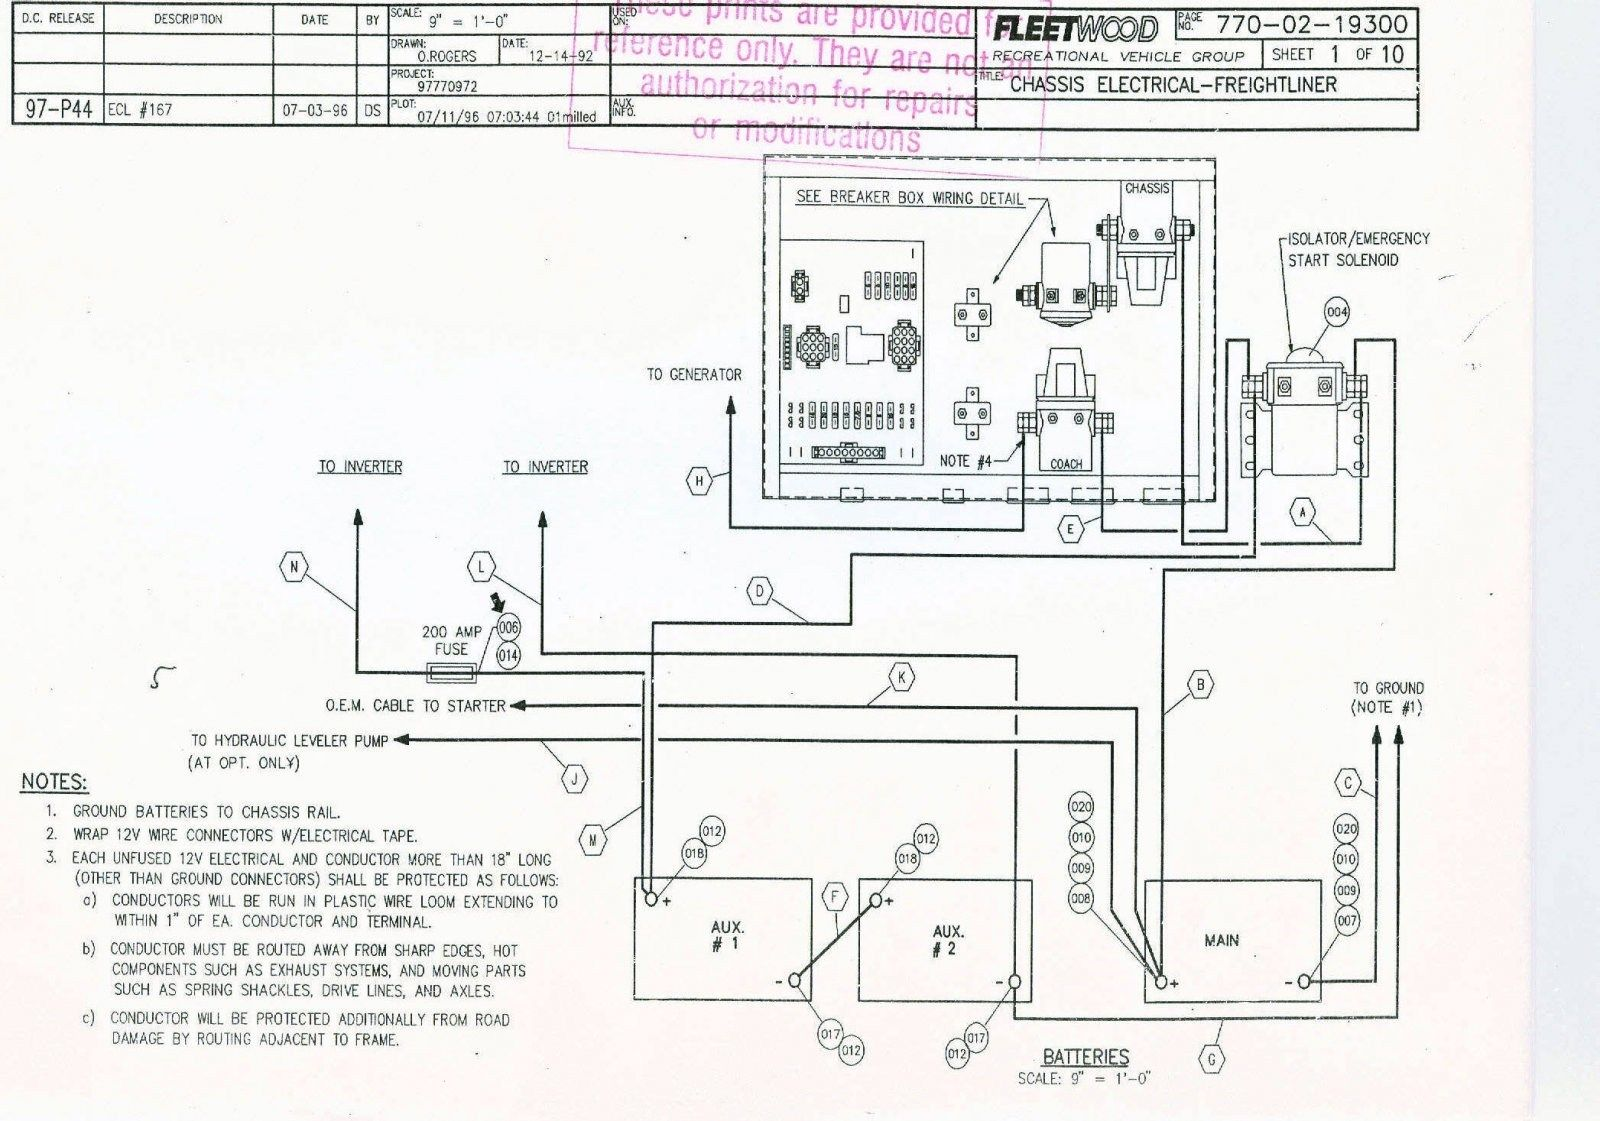 06 Freightliner M2 Wiring Diagram - 2003 Sportster Wiring Diagram for Wiring  Diagram SchematicsWiring Diagram Schematics